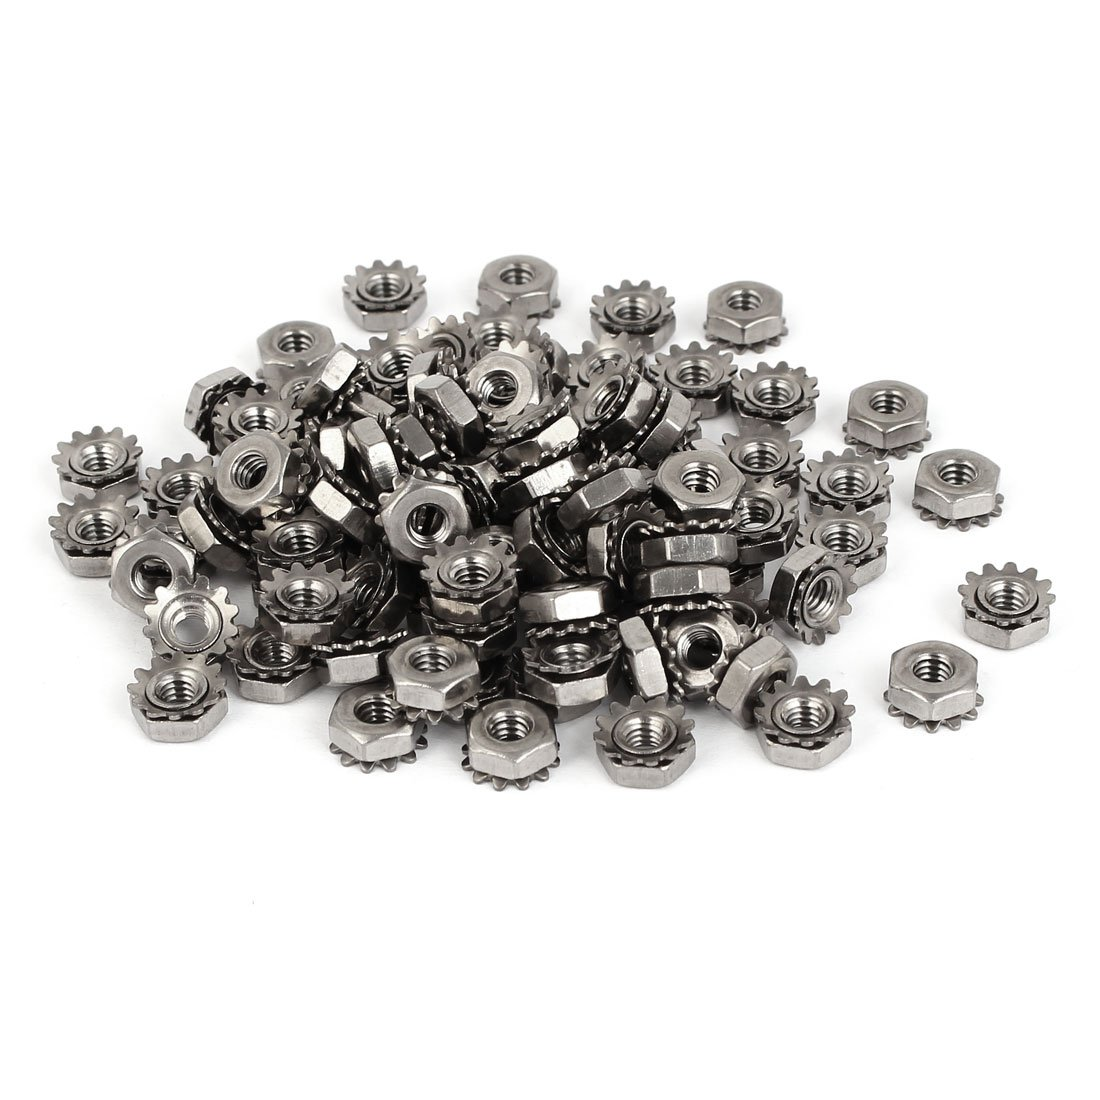 uxcell 8#-32 304 Stainless Steel Female Thread Kep Hex Head Lock Nut 100pcs